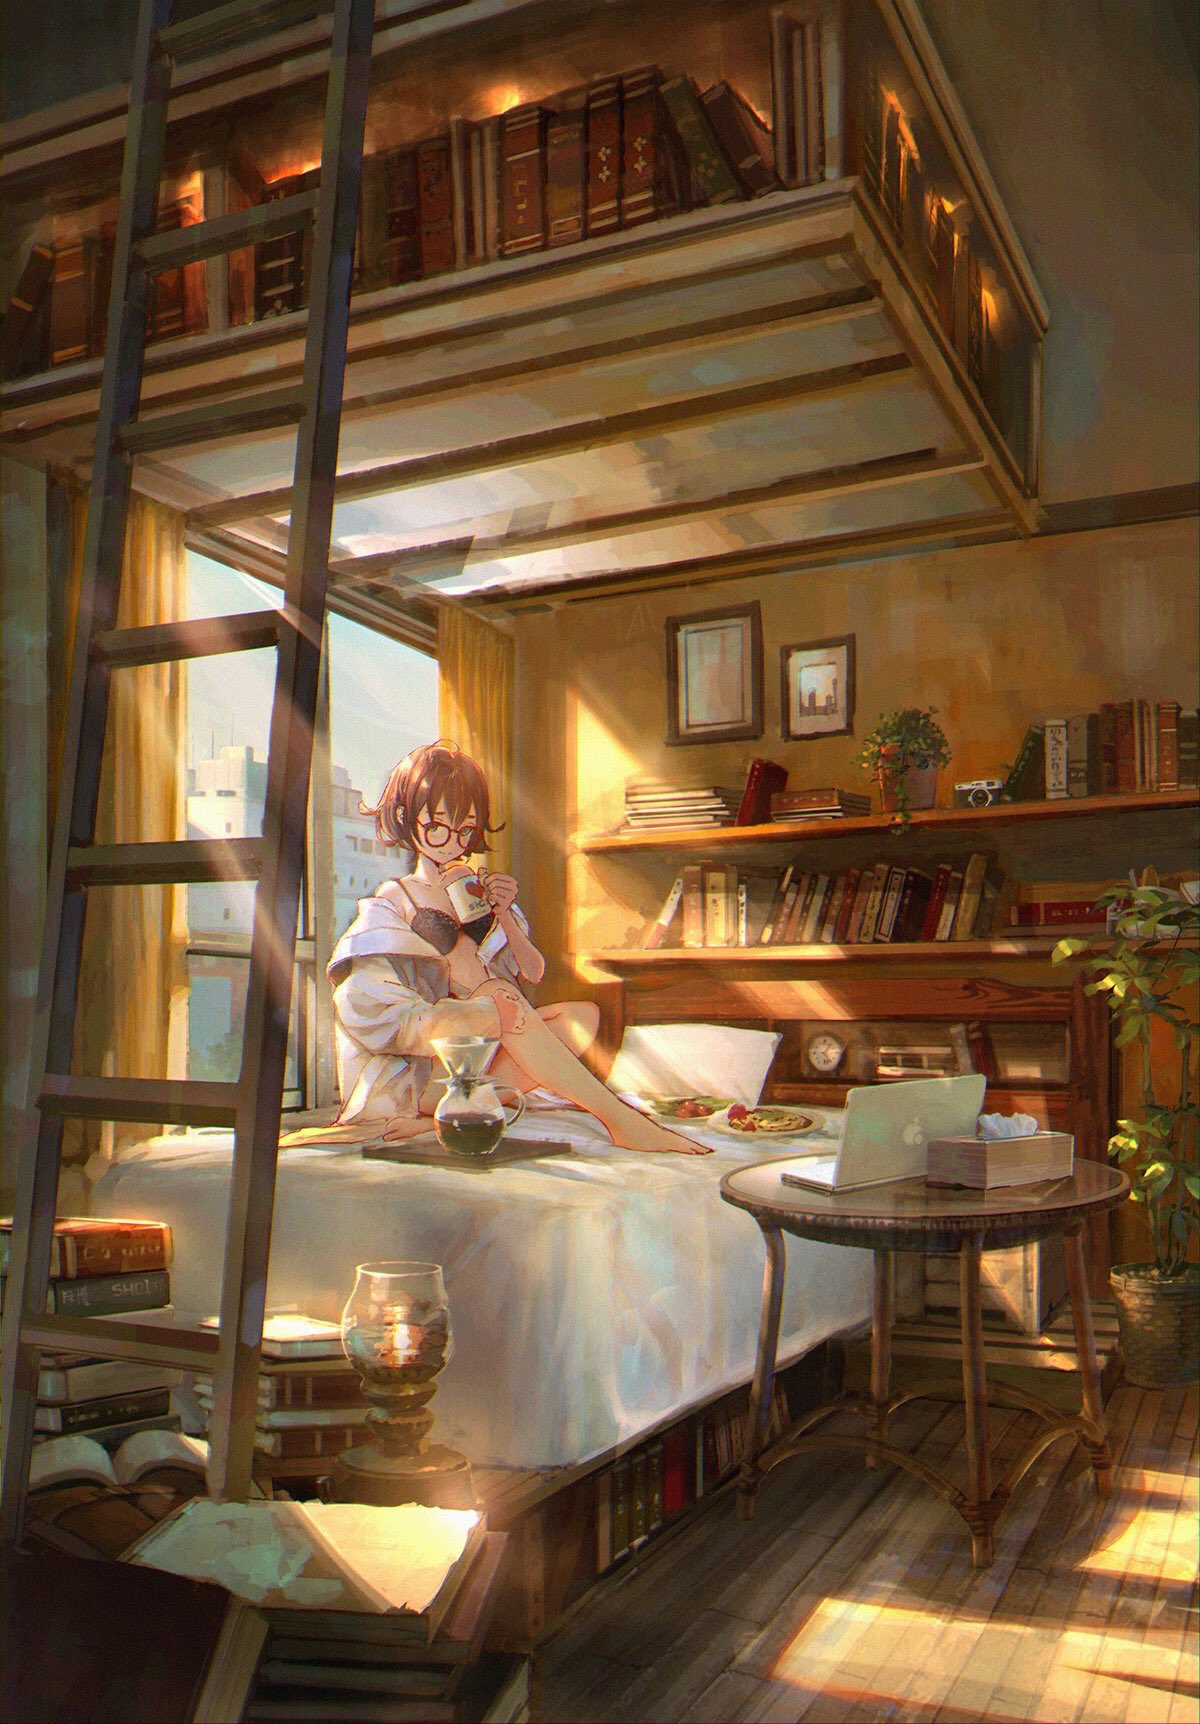 1girl alarm_clock baggy_clothes bare_shoulders barefoot bed black_bra book_stack bra brown_hair camera clock coffee computer cup curtains day food glasses green_eyes heart highres holding holding_cup indoors jacket knee_up ladder laptop light_rays looking_at_viewer mug on_bed open_clothes open_jacket original picture_frame pillow pitcher plant plate potted_plant red-framed_eyewear round_eyewear shelf sho_(shoichi-kokubun) short_hair sidelocks smile solo sunbeam sunlight table tissue_box underwear white_jacket wide_shot window